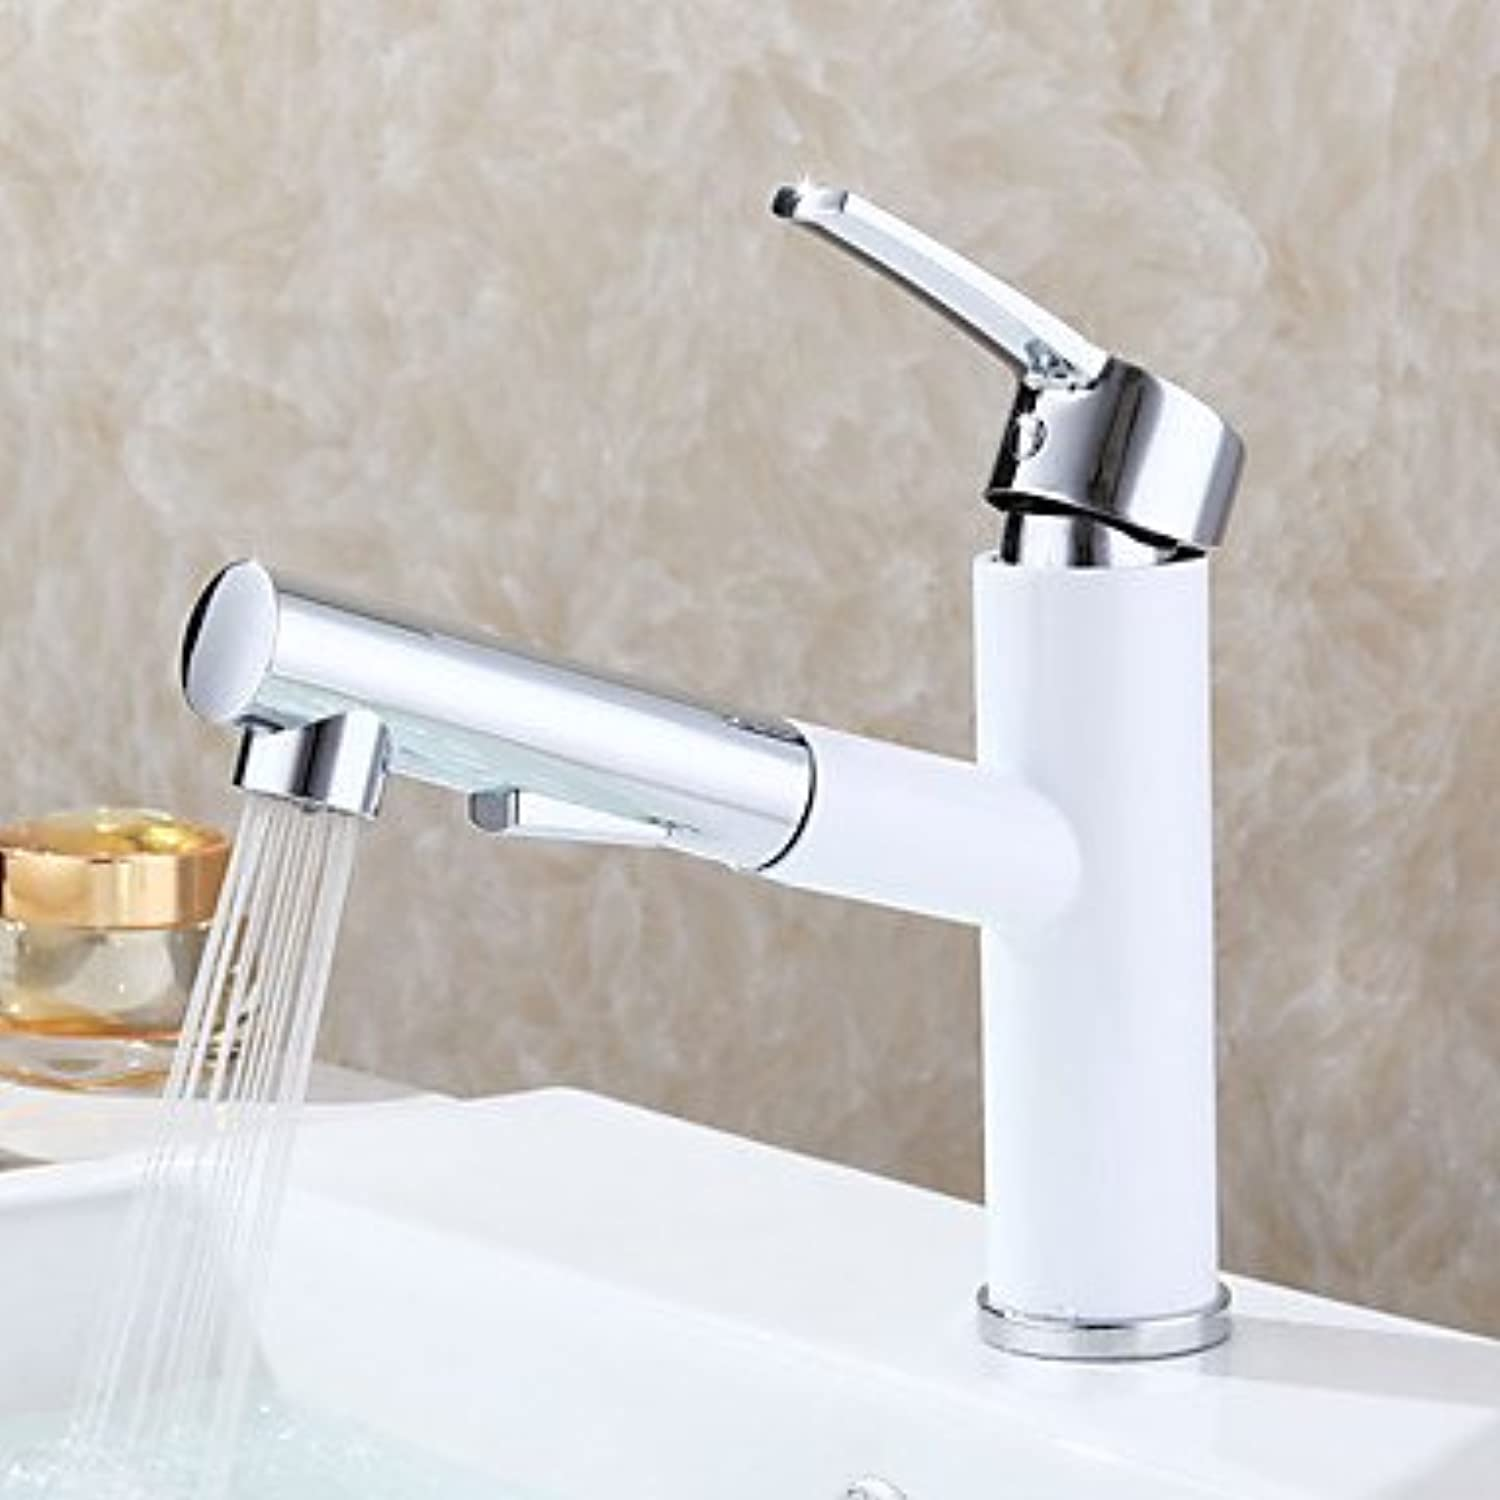 WYFC Round Centerset Pull out with Ceramic Valve Single Handle One Hole for Painting , Bathroom Sink Faucet